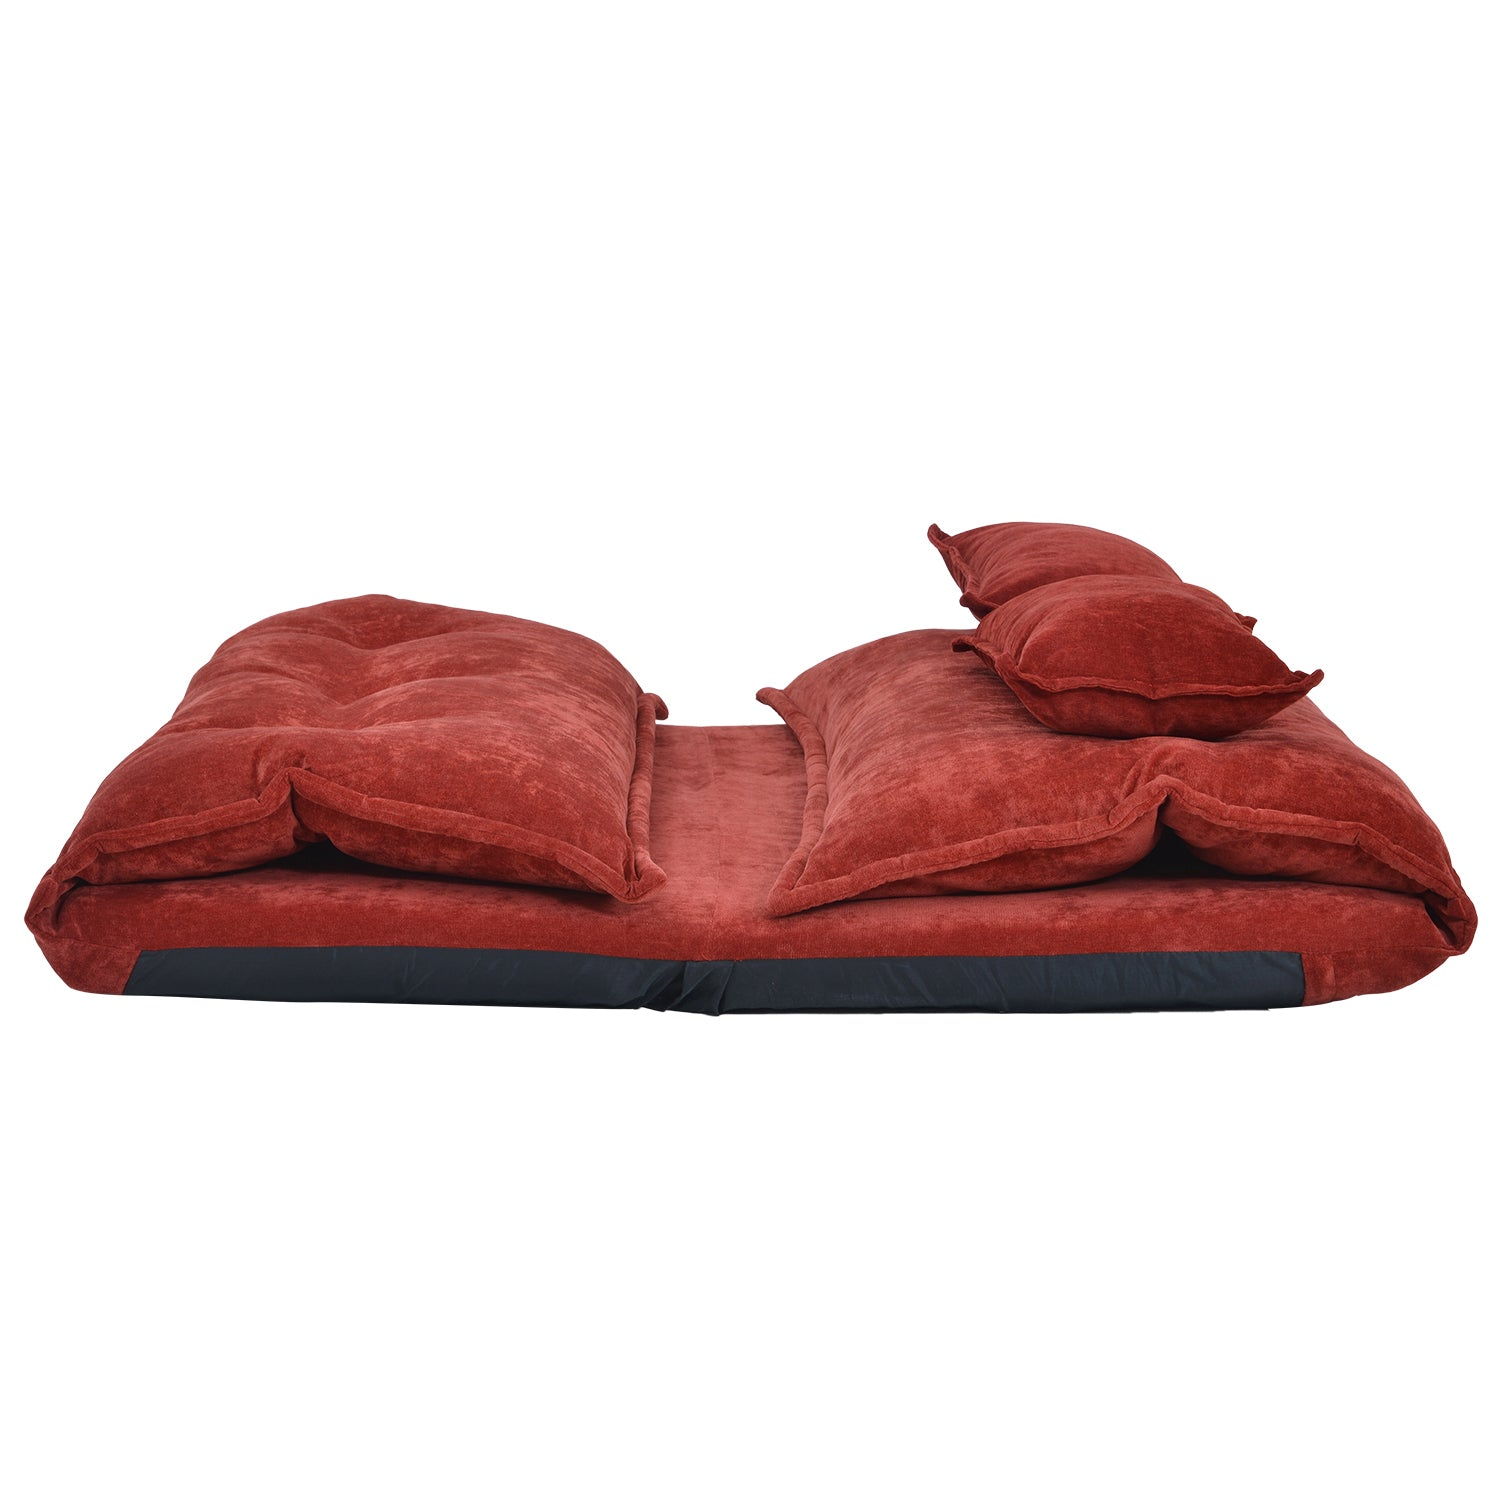 Maroon Floor Chair Adjustable Sofa Bed Lounge Floor Mattress Lazy Man Couch with Two Pillows BH194102 BH008064